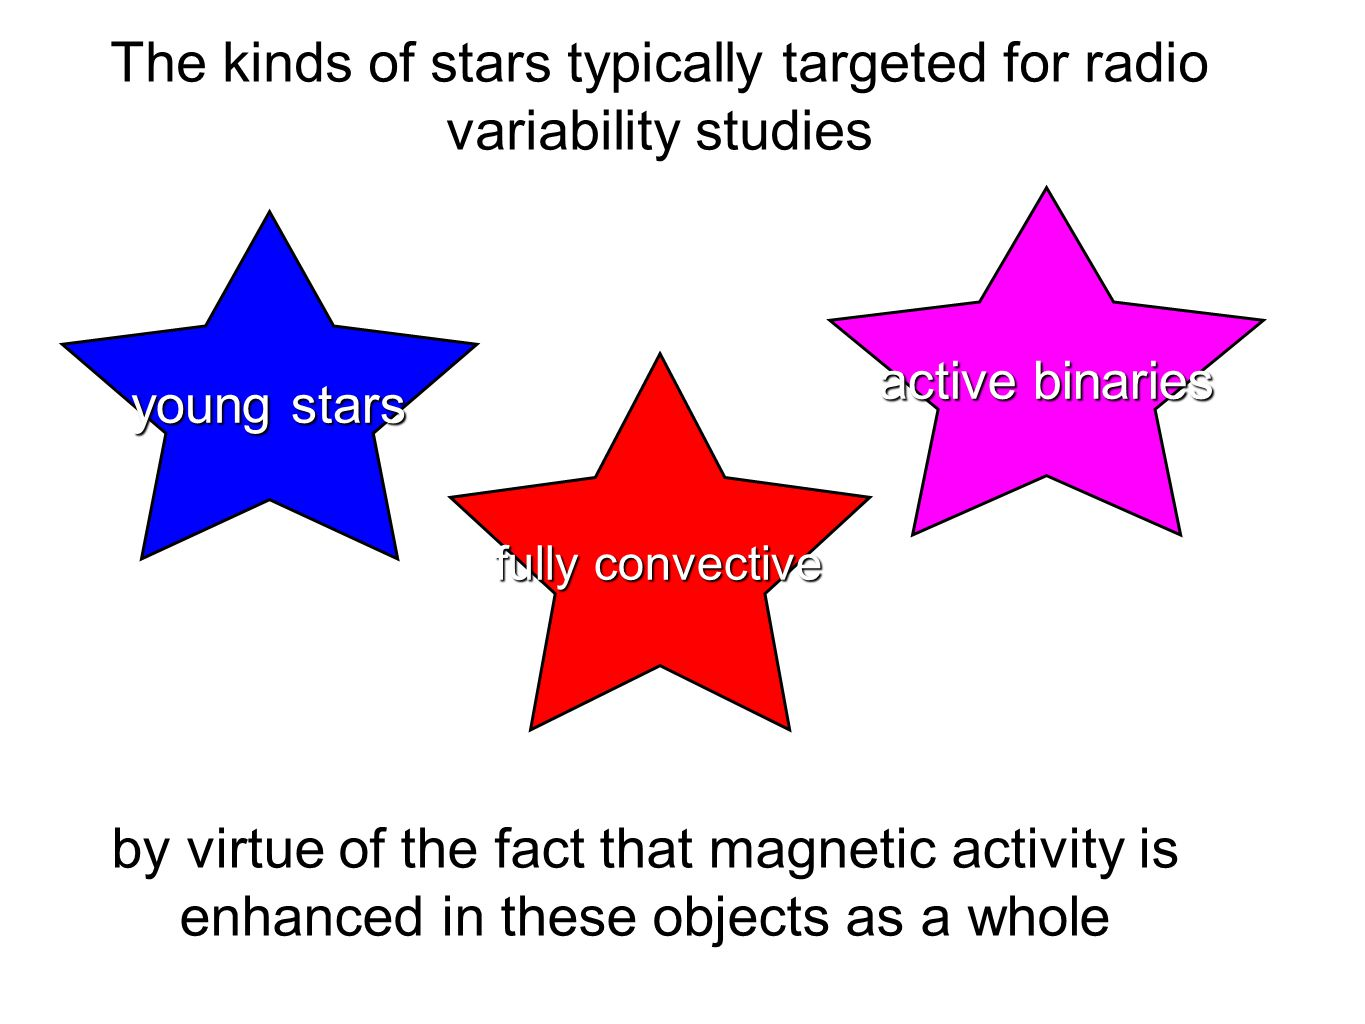 The kinds of stars typically targeted for radio variability studies young stars active binaries fully convective by virtue of the fact that magnetic activity is enhanced in these objects as a whole